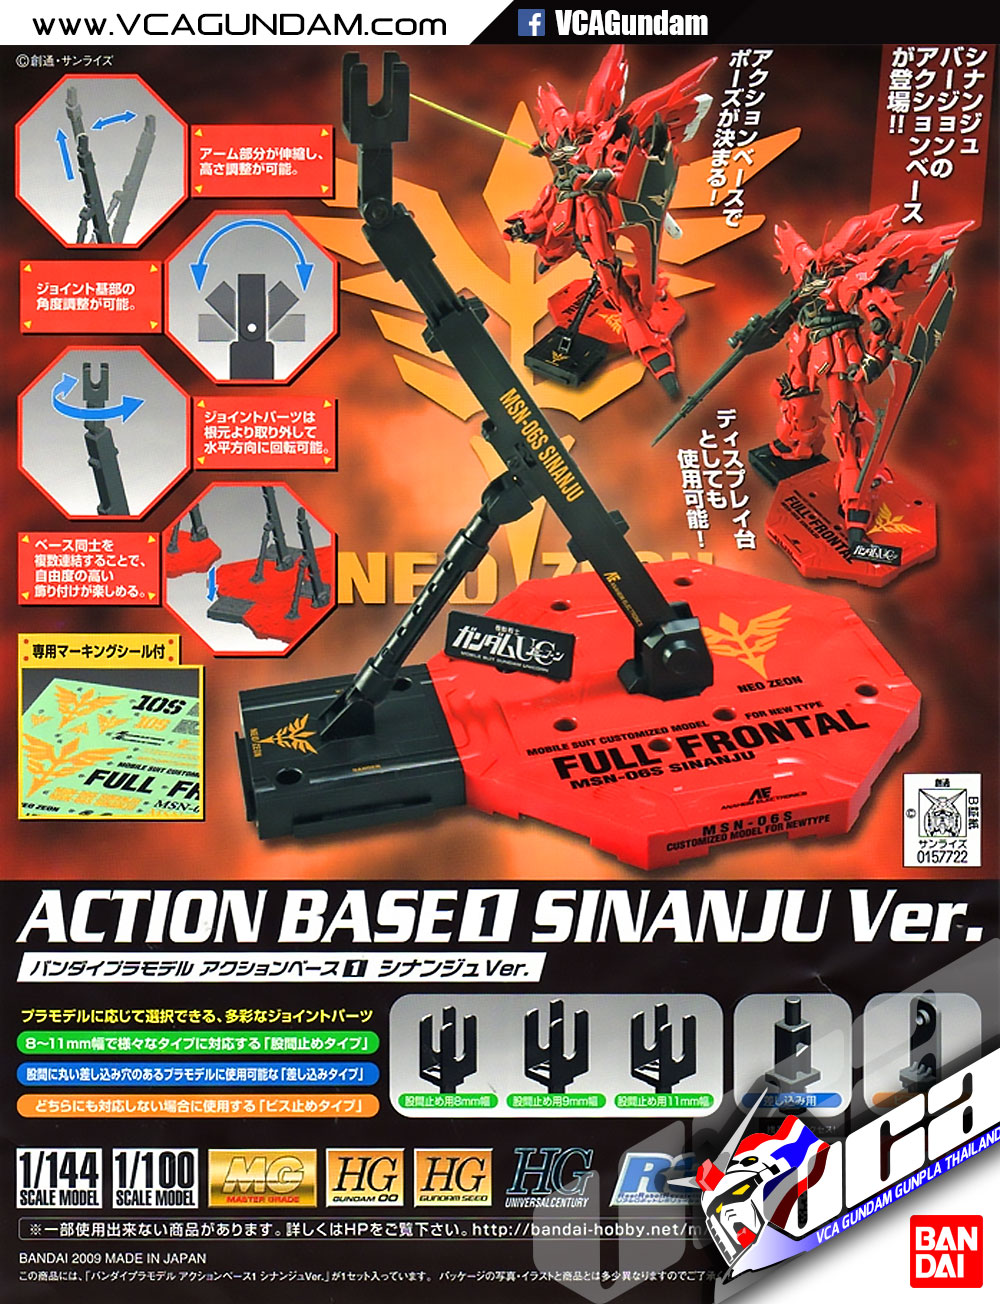 ACTION BASE 1 SINANJU VER